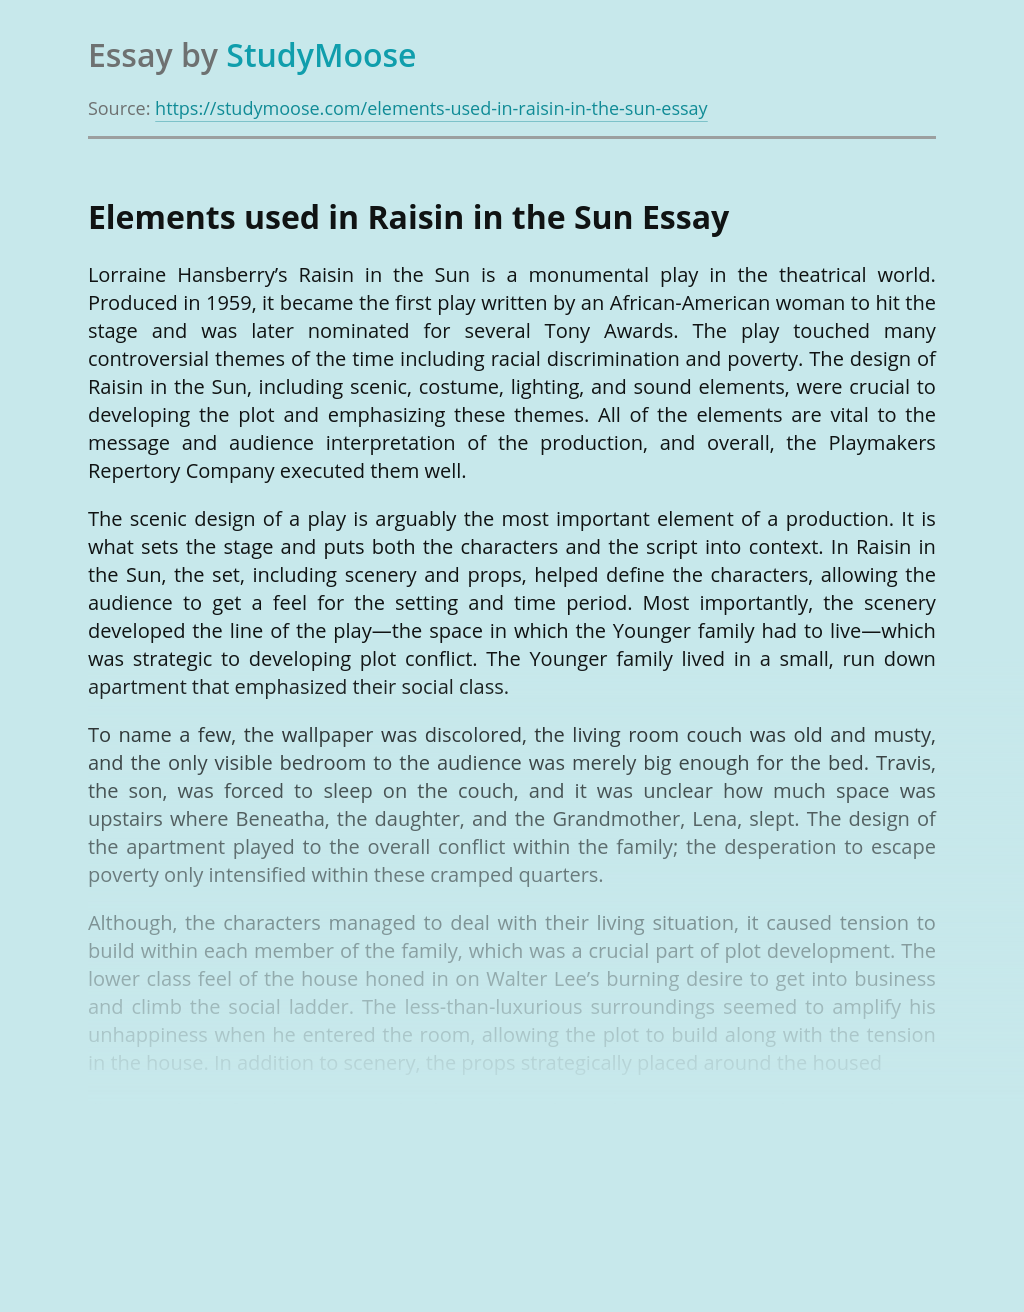 Elements used in Raisin in the Sun